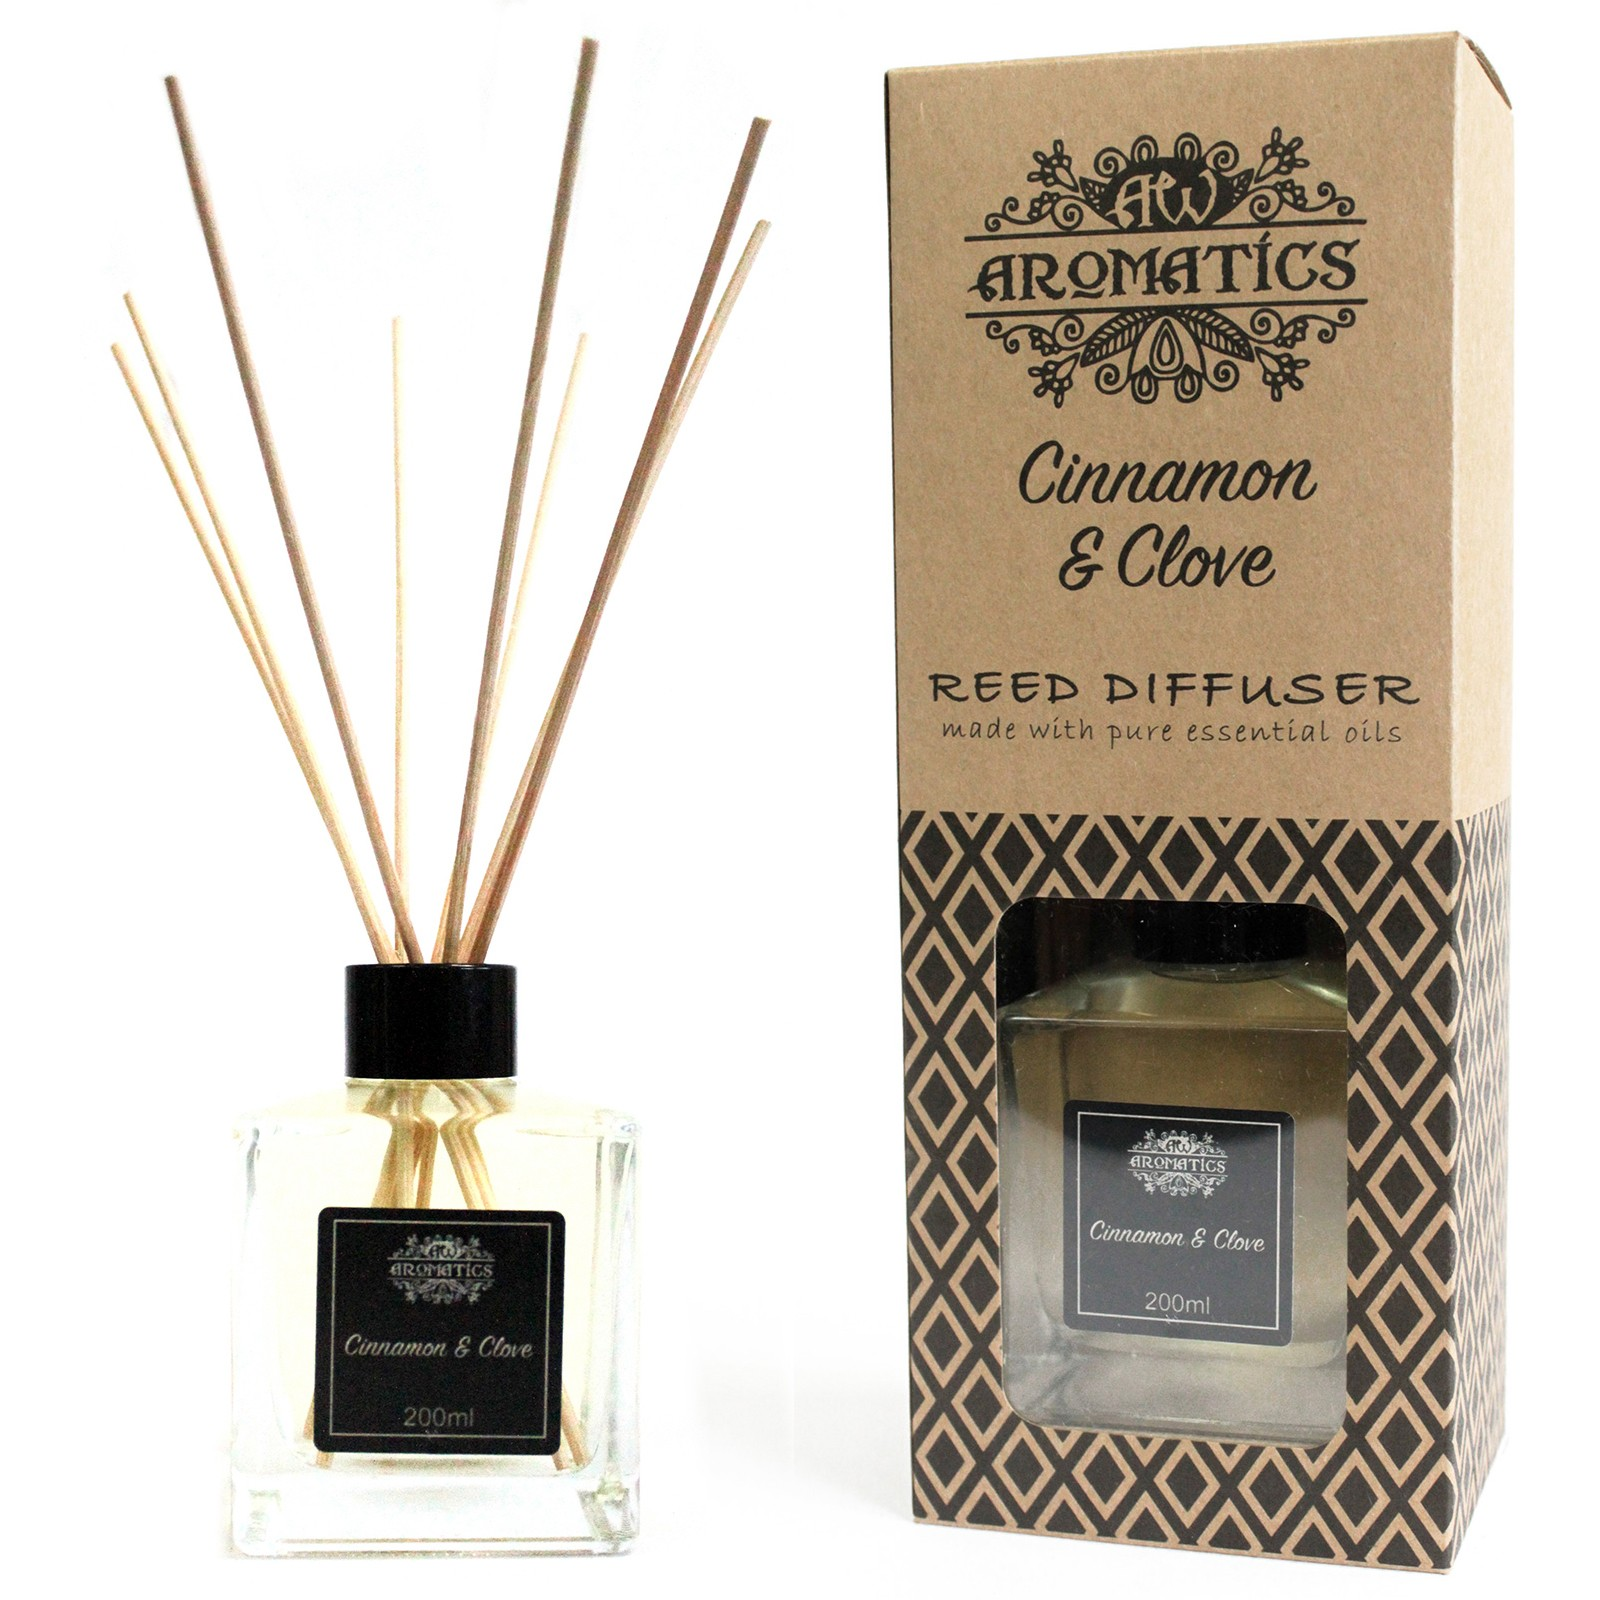 200ml Cinnamon and Clove Essential Oil Reed Diffuser